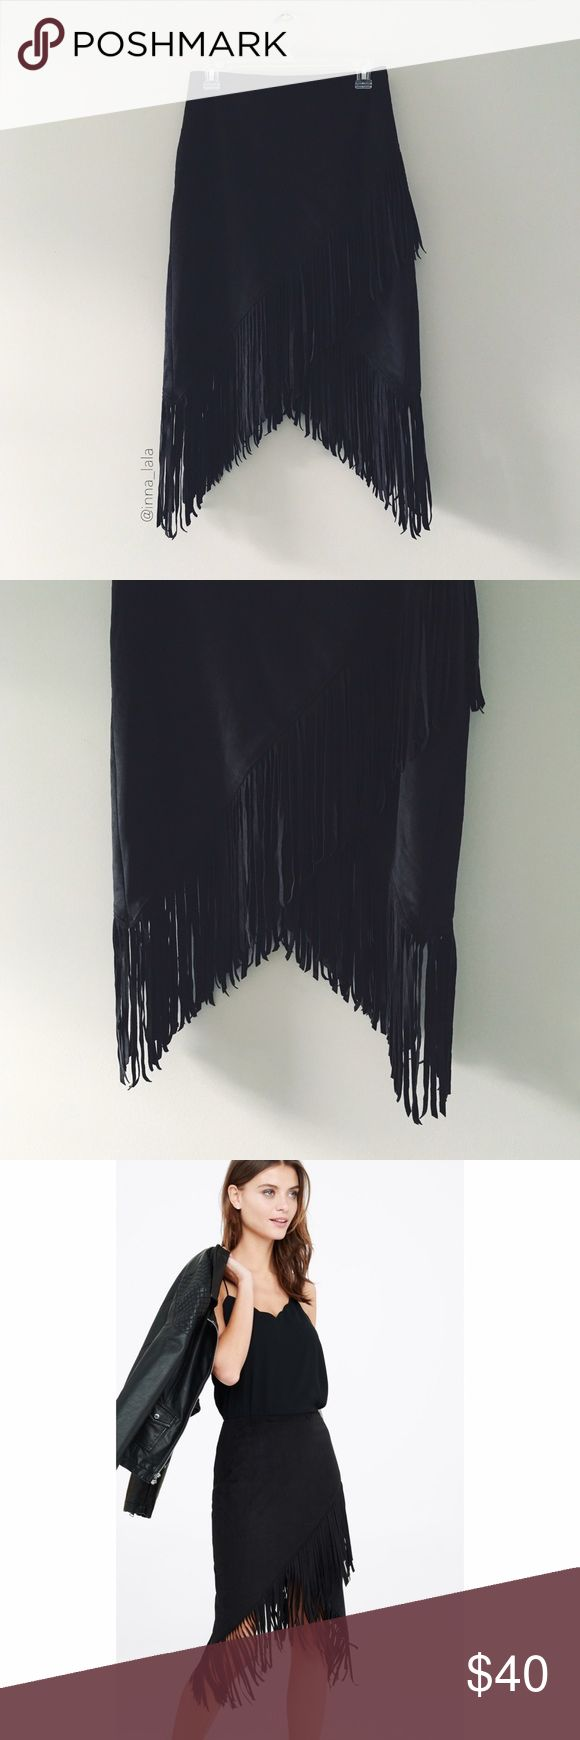 "Express Faux Suede Fringe Skirt Express Faux Suede Fringe Skirt A supple, faux suede wrap skirt with ample, eight-inch fringe that swishes when you walk. Keep it simple and sexy with a shape-skimming ribbed sweater or go for a fully Southwestern vibe with a cami and denim jacket. -High waisted -Hidden hook and zipper on side -8"" fringe embellishment -Wrap hem; Lined -Polyester/Spandex body; Polyester lining -Machine wash : inna_lala & express.com Express Skirts Midi"